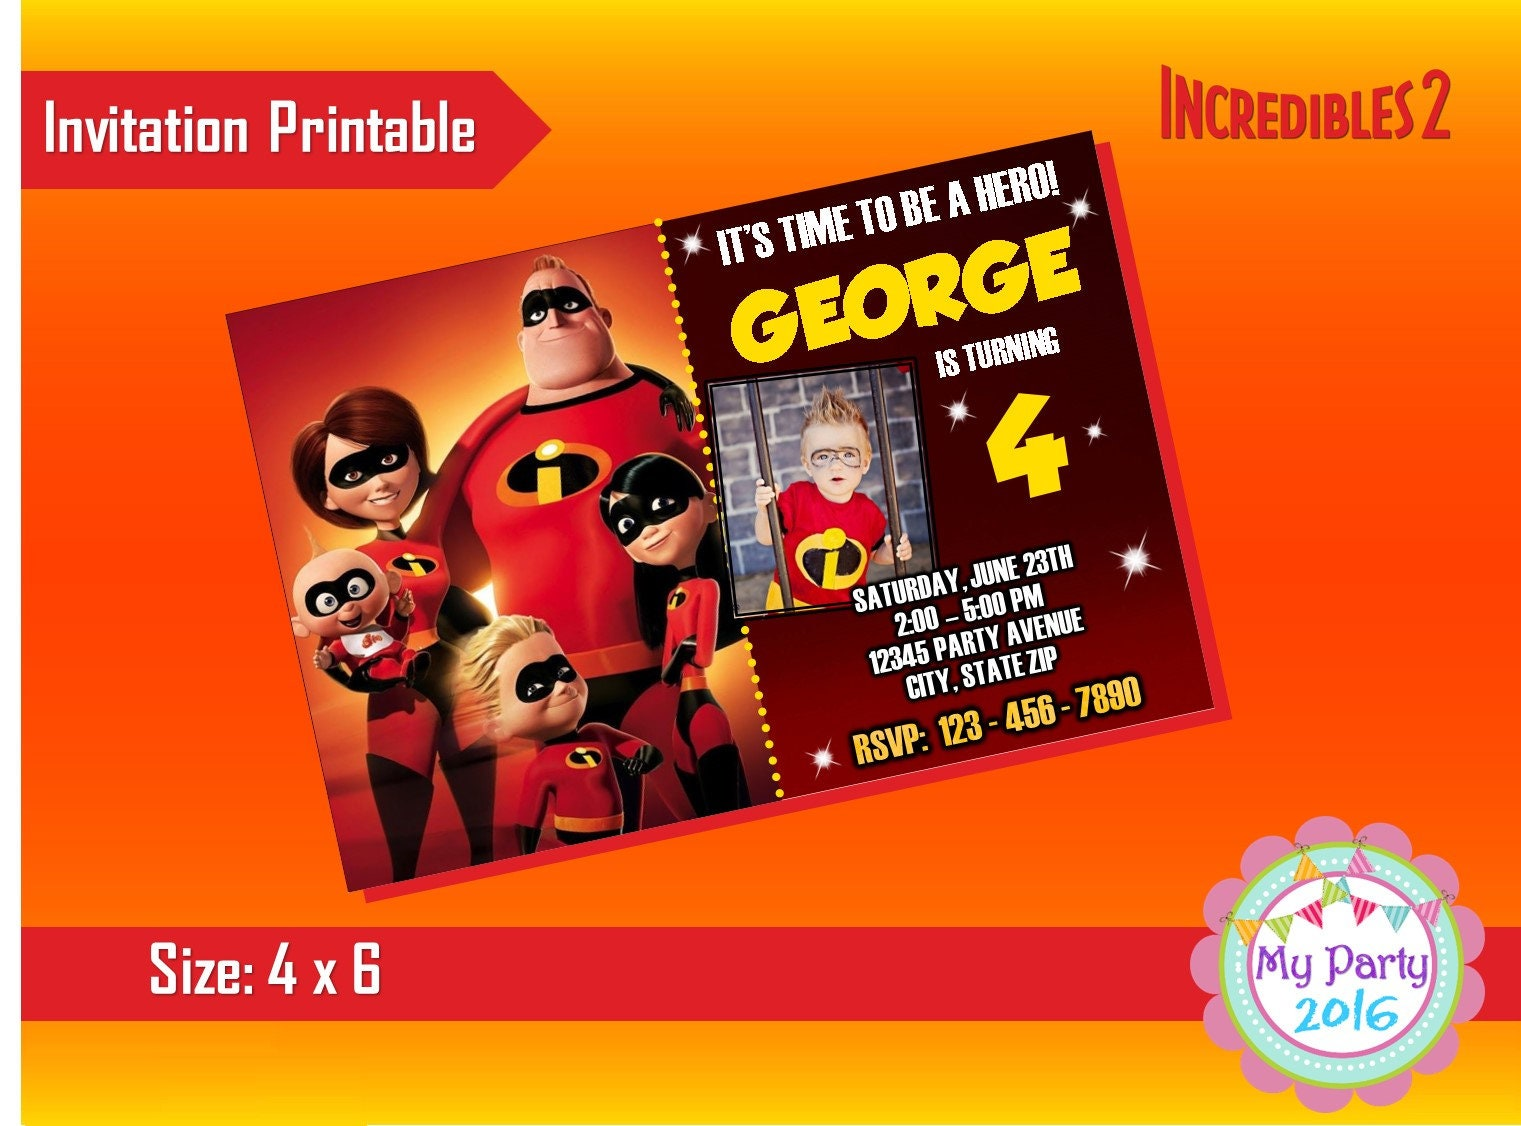 The Incredibles 2 Birthday Party Invitation with Photo | Etsy